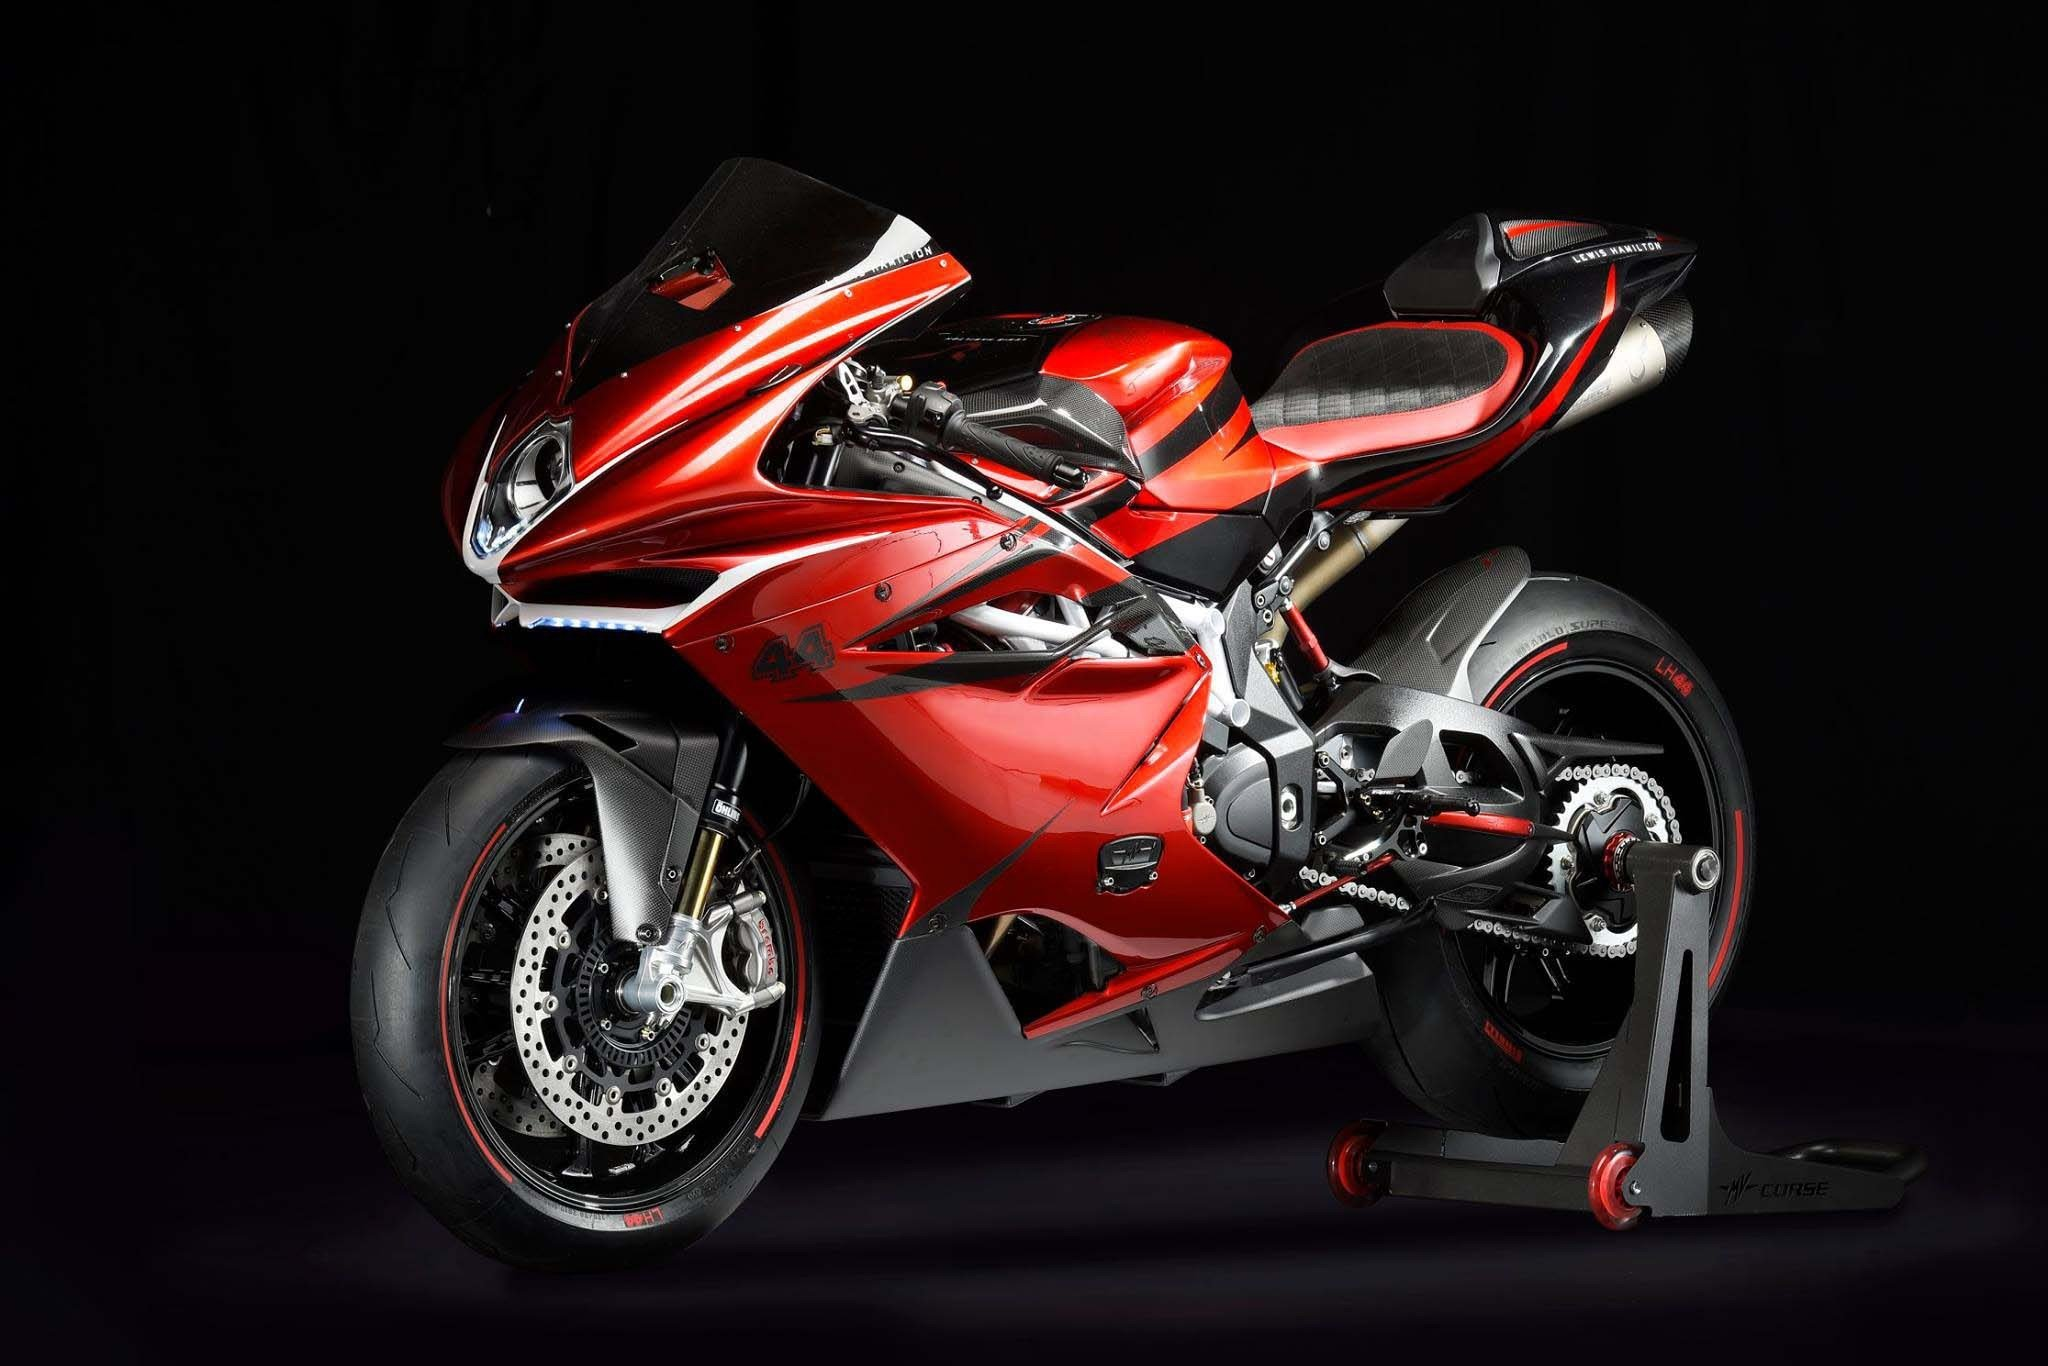 MV Agusta and Lewis Hamilton team up for a $70,000 limited edition motorcycle